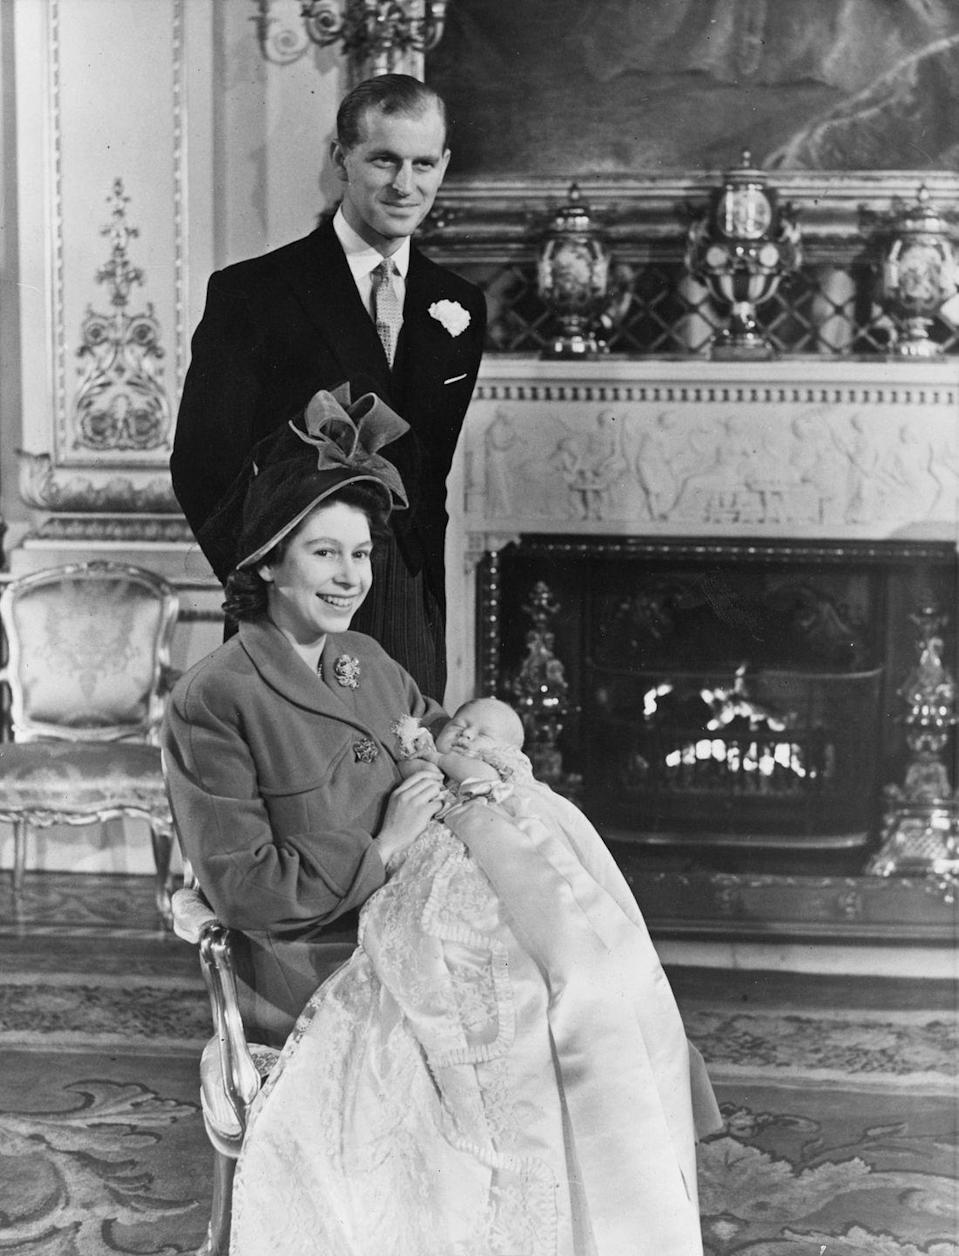 <p>Prince Charles was born November 14, and the happy new parents had him christened that December at Buckingham Palace — in a version of the same gown that William, Harry, George, and Charlotte all wore!</p>